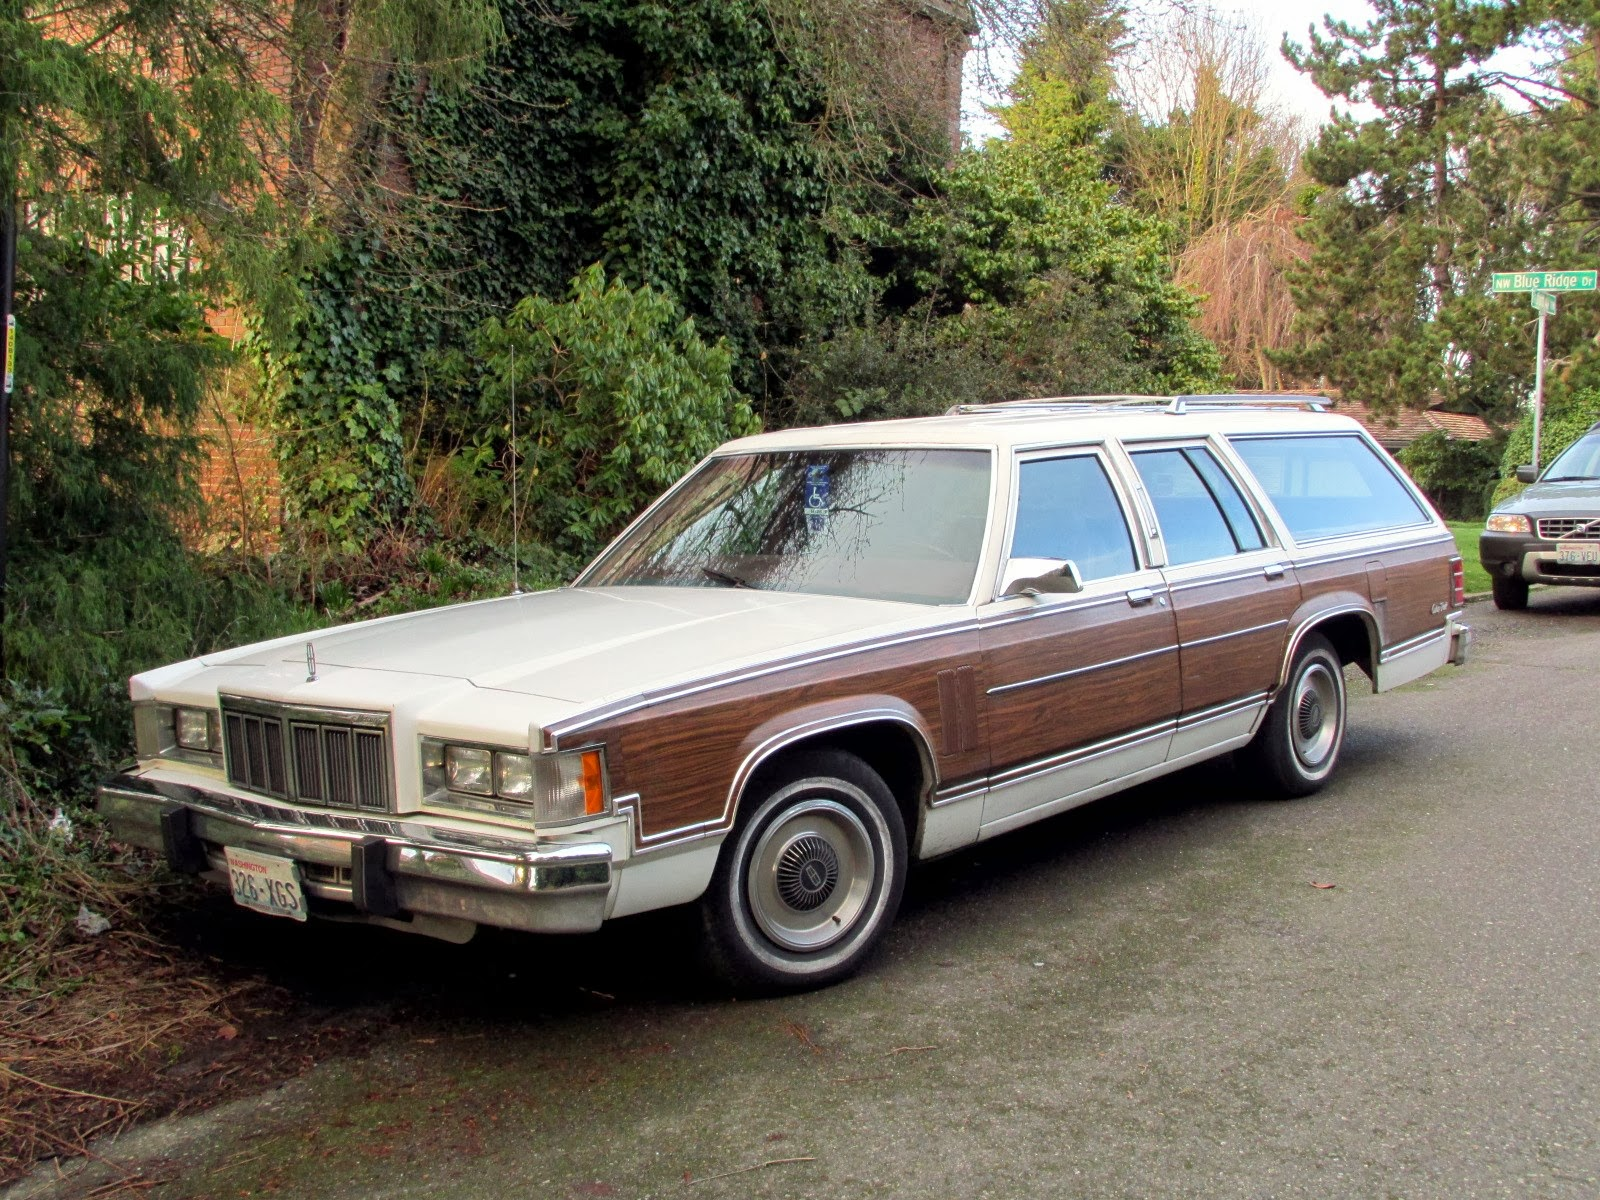 Seattles classics 1979 mercury grand marquis colony park wagon 1979 mercury grand marquis colony park wagon sciox Images